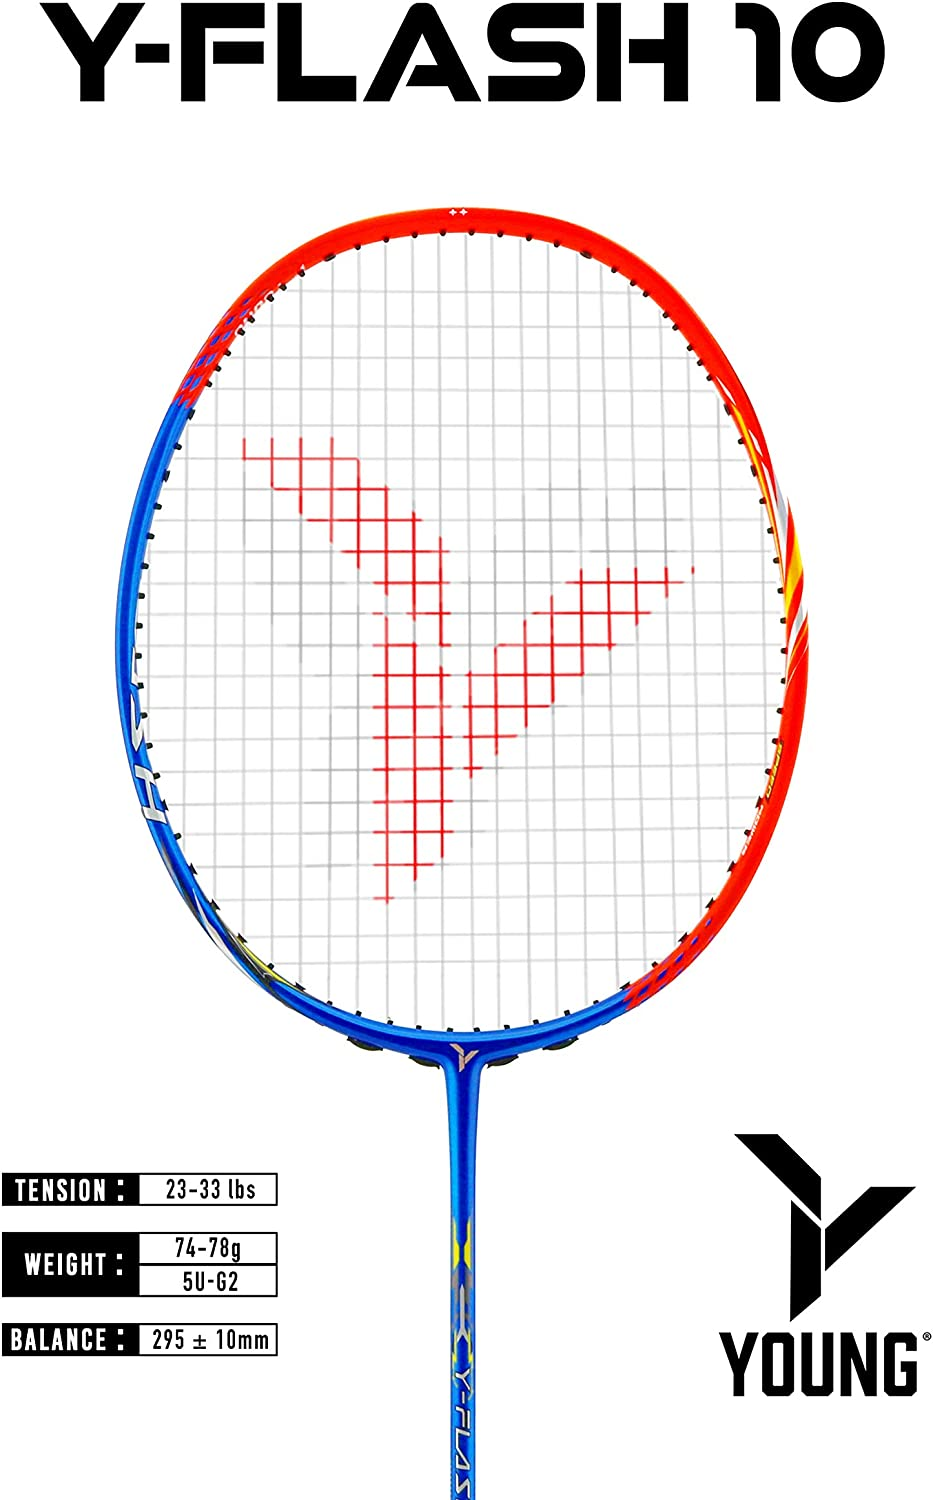 Lightweight 78-82g Yang Yang Rambo 0.68mm ONE Piece High Modulus 24-Ton Graphite Carrying Bag Strung 24-lb Head Light 5U NO T-Joint Young Passion Professional Badminton Racket